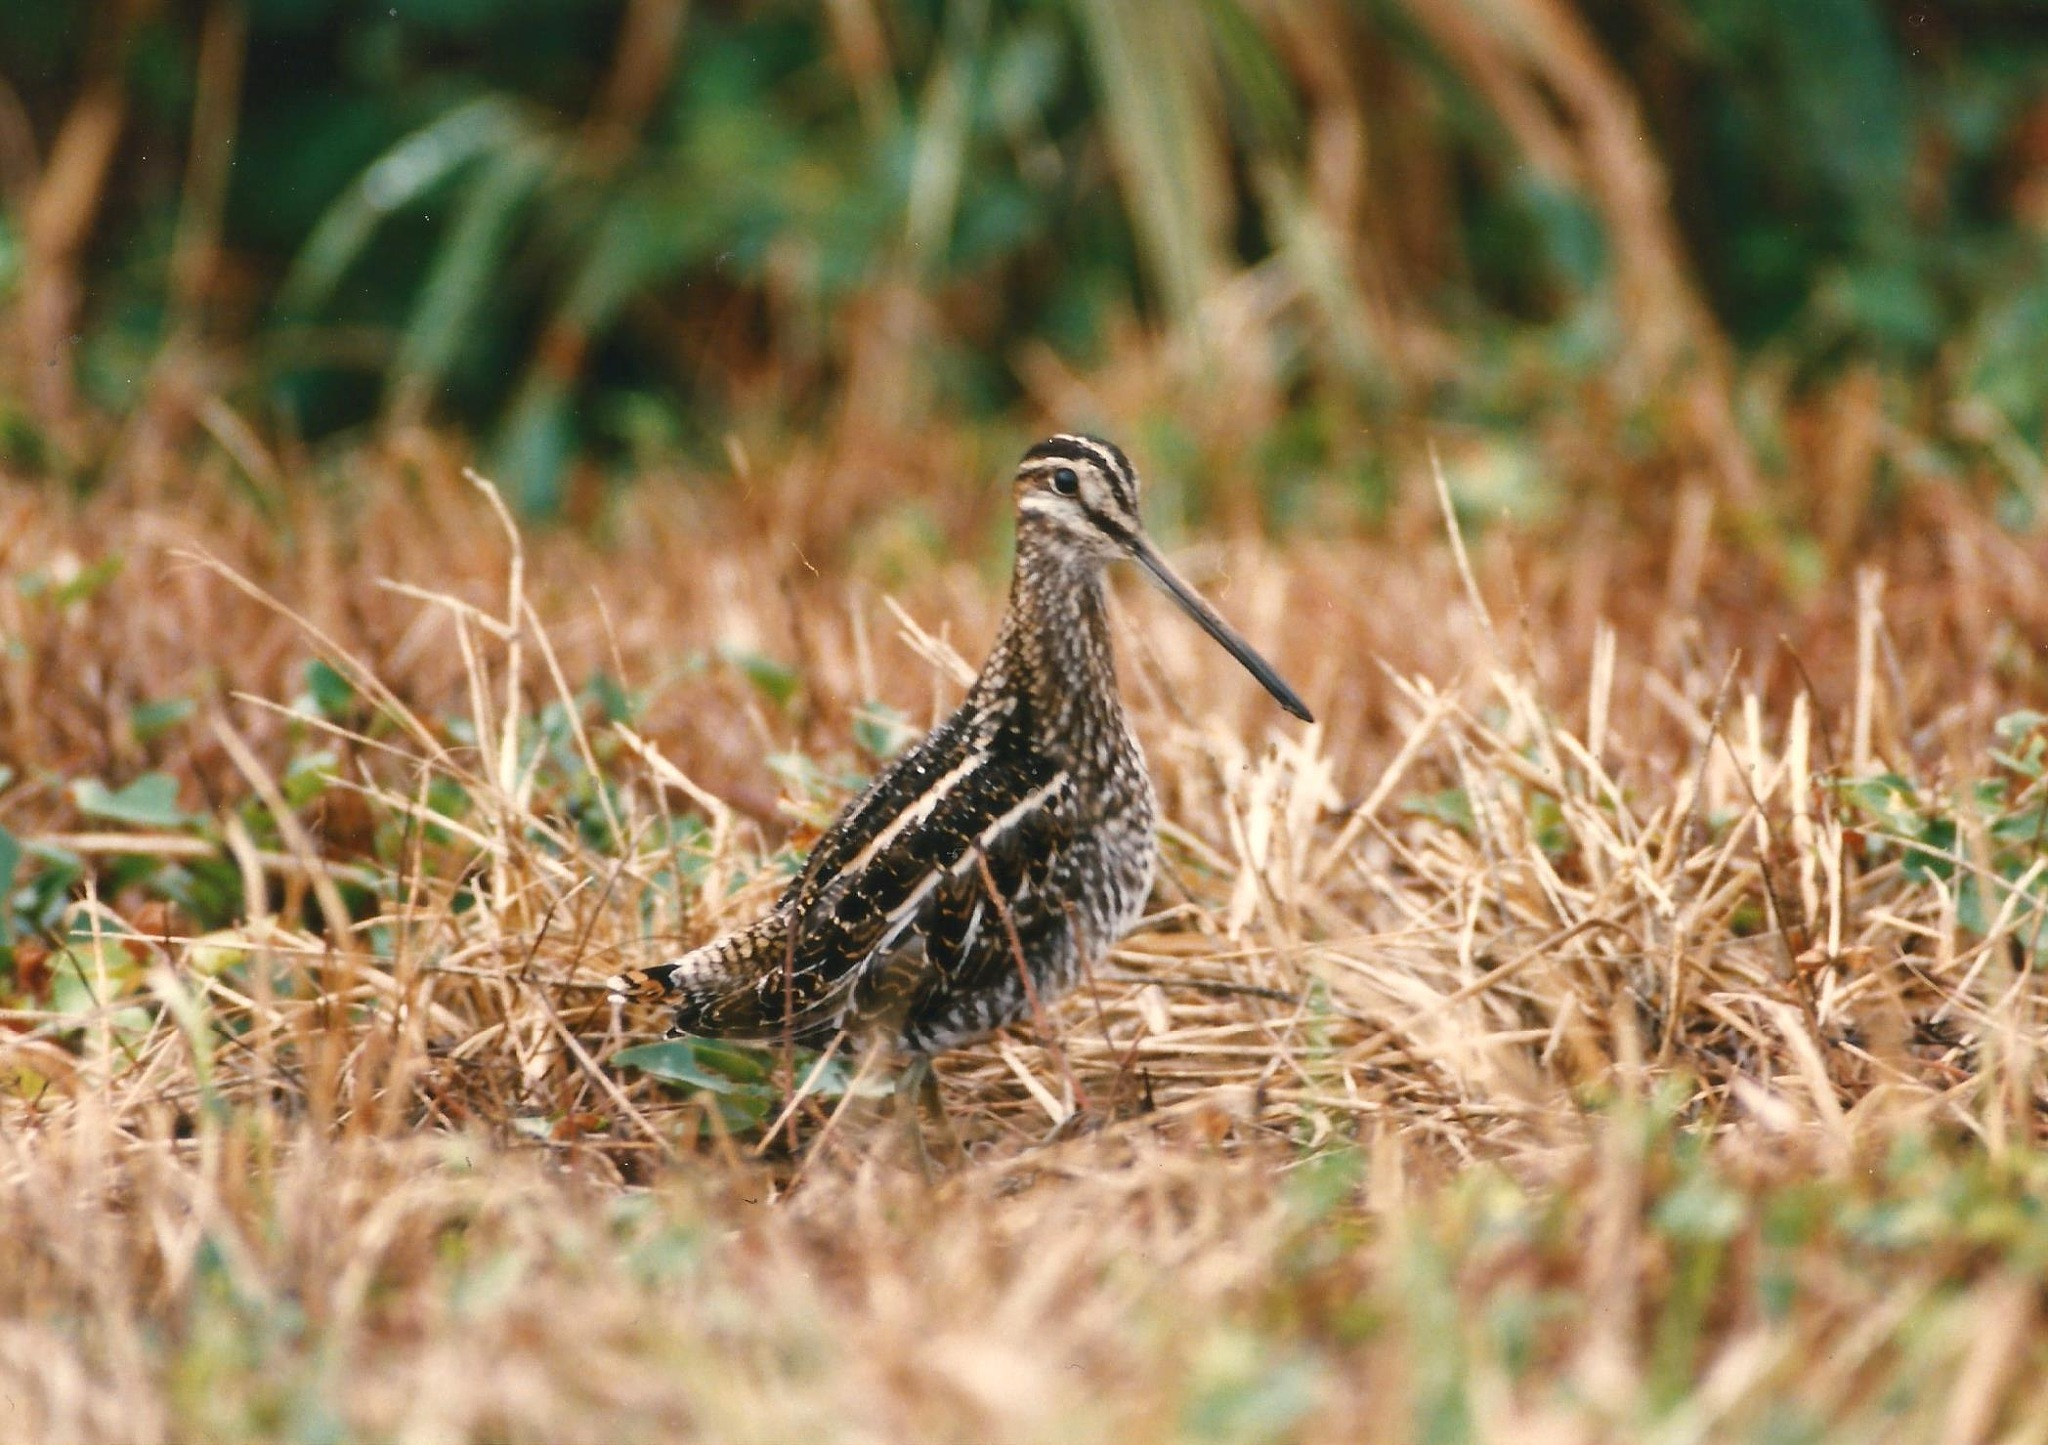 THE COMMON SNIPE by Hope Atwood Dayhoff